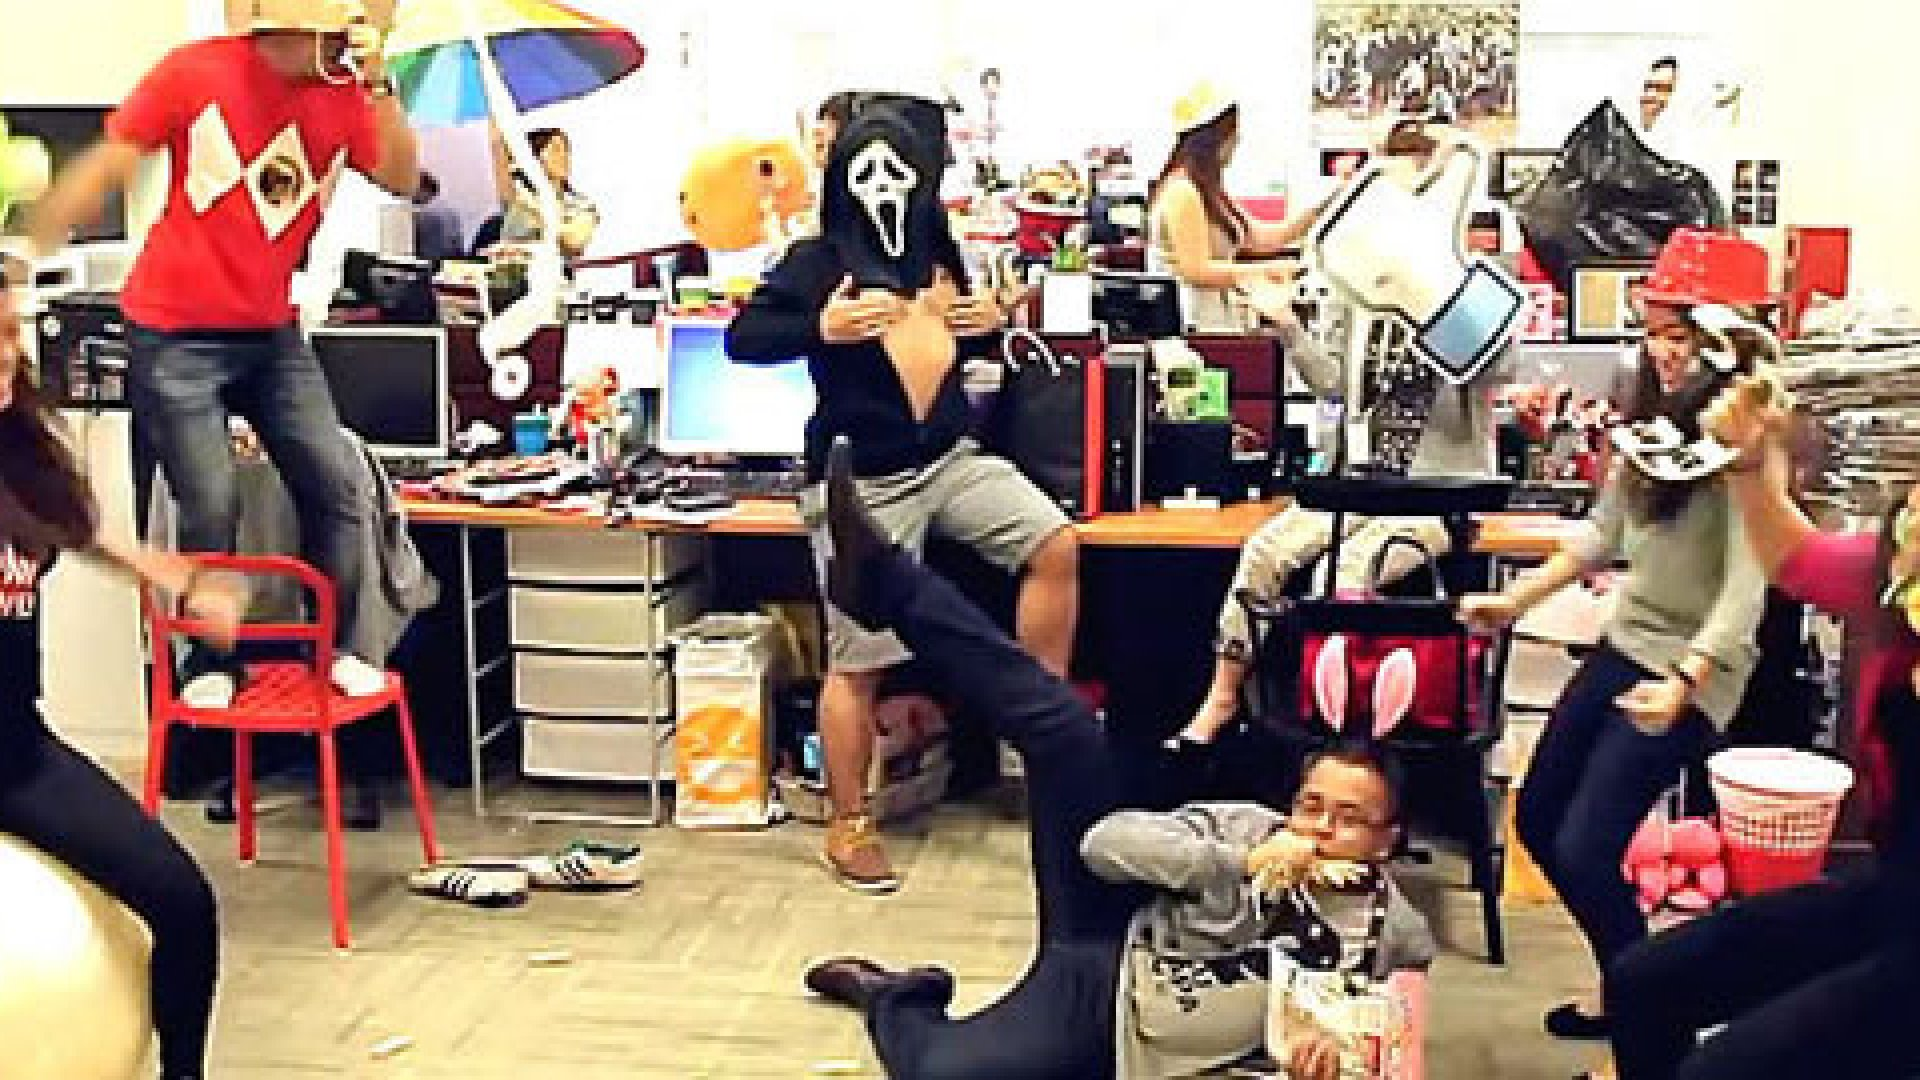 3 Things the 'Harlem Shake' Reveals About the Workplace